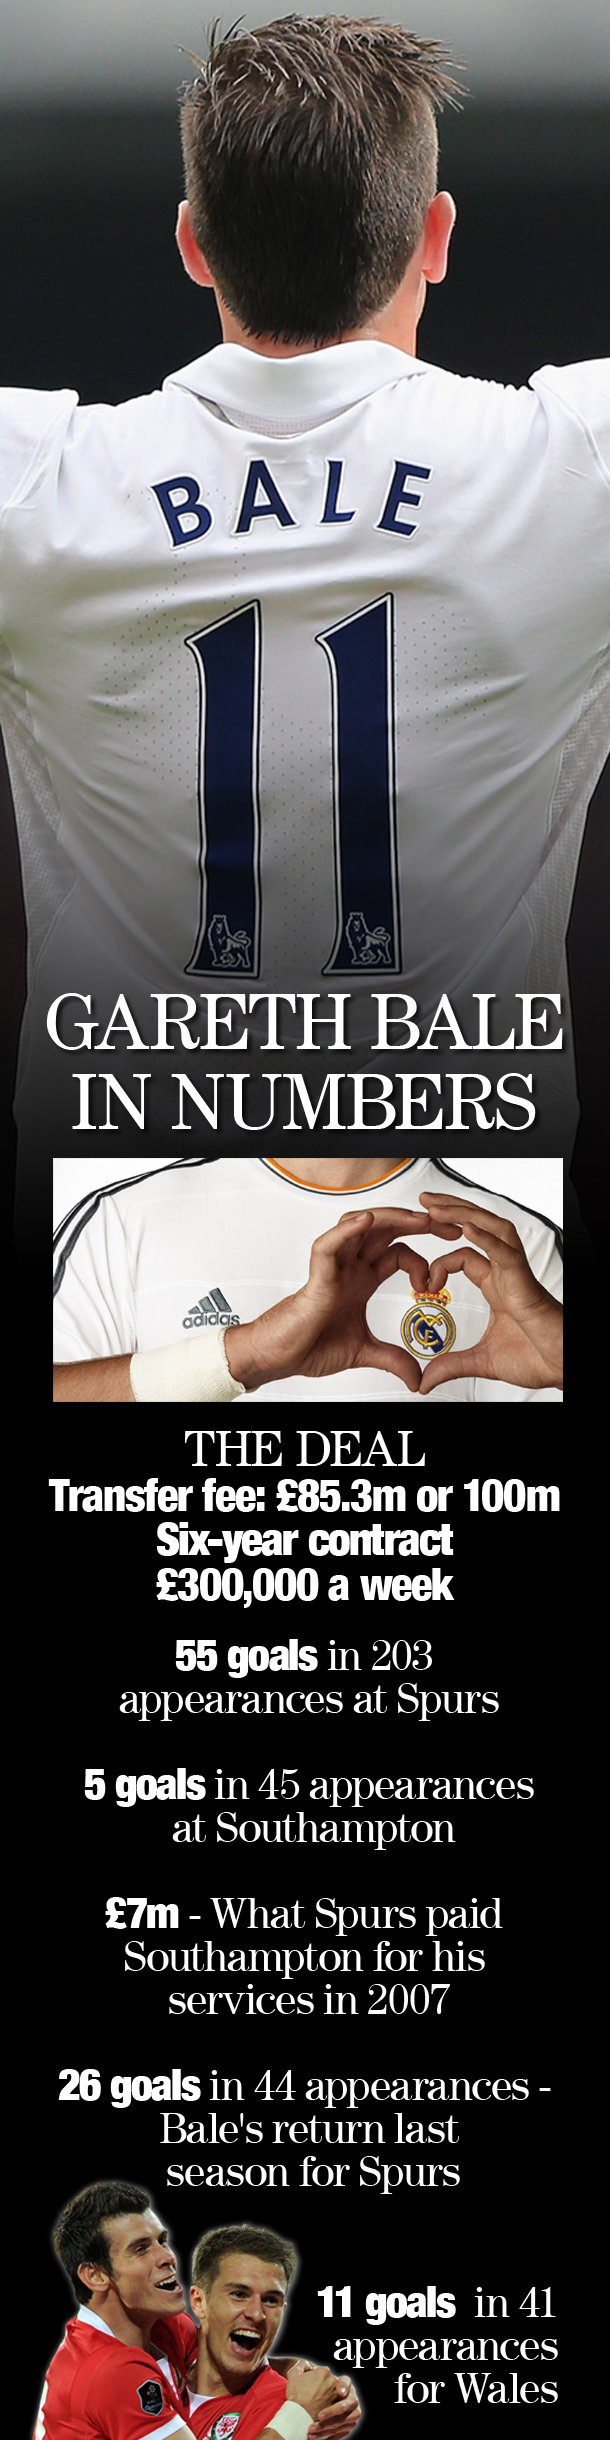 Gareth Bale in numbers